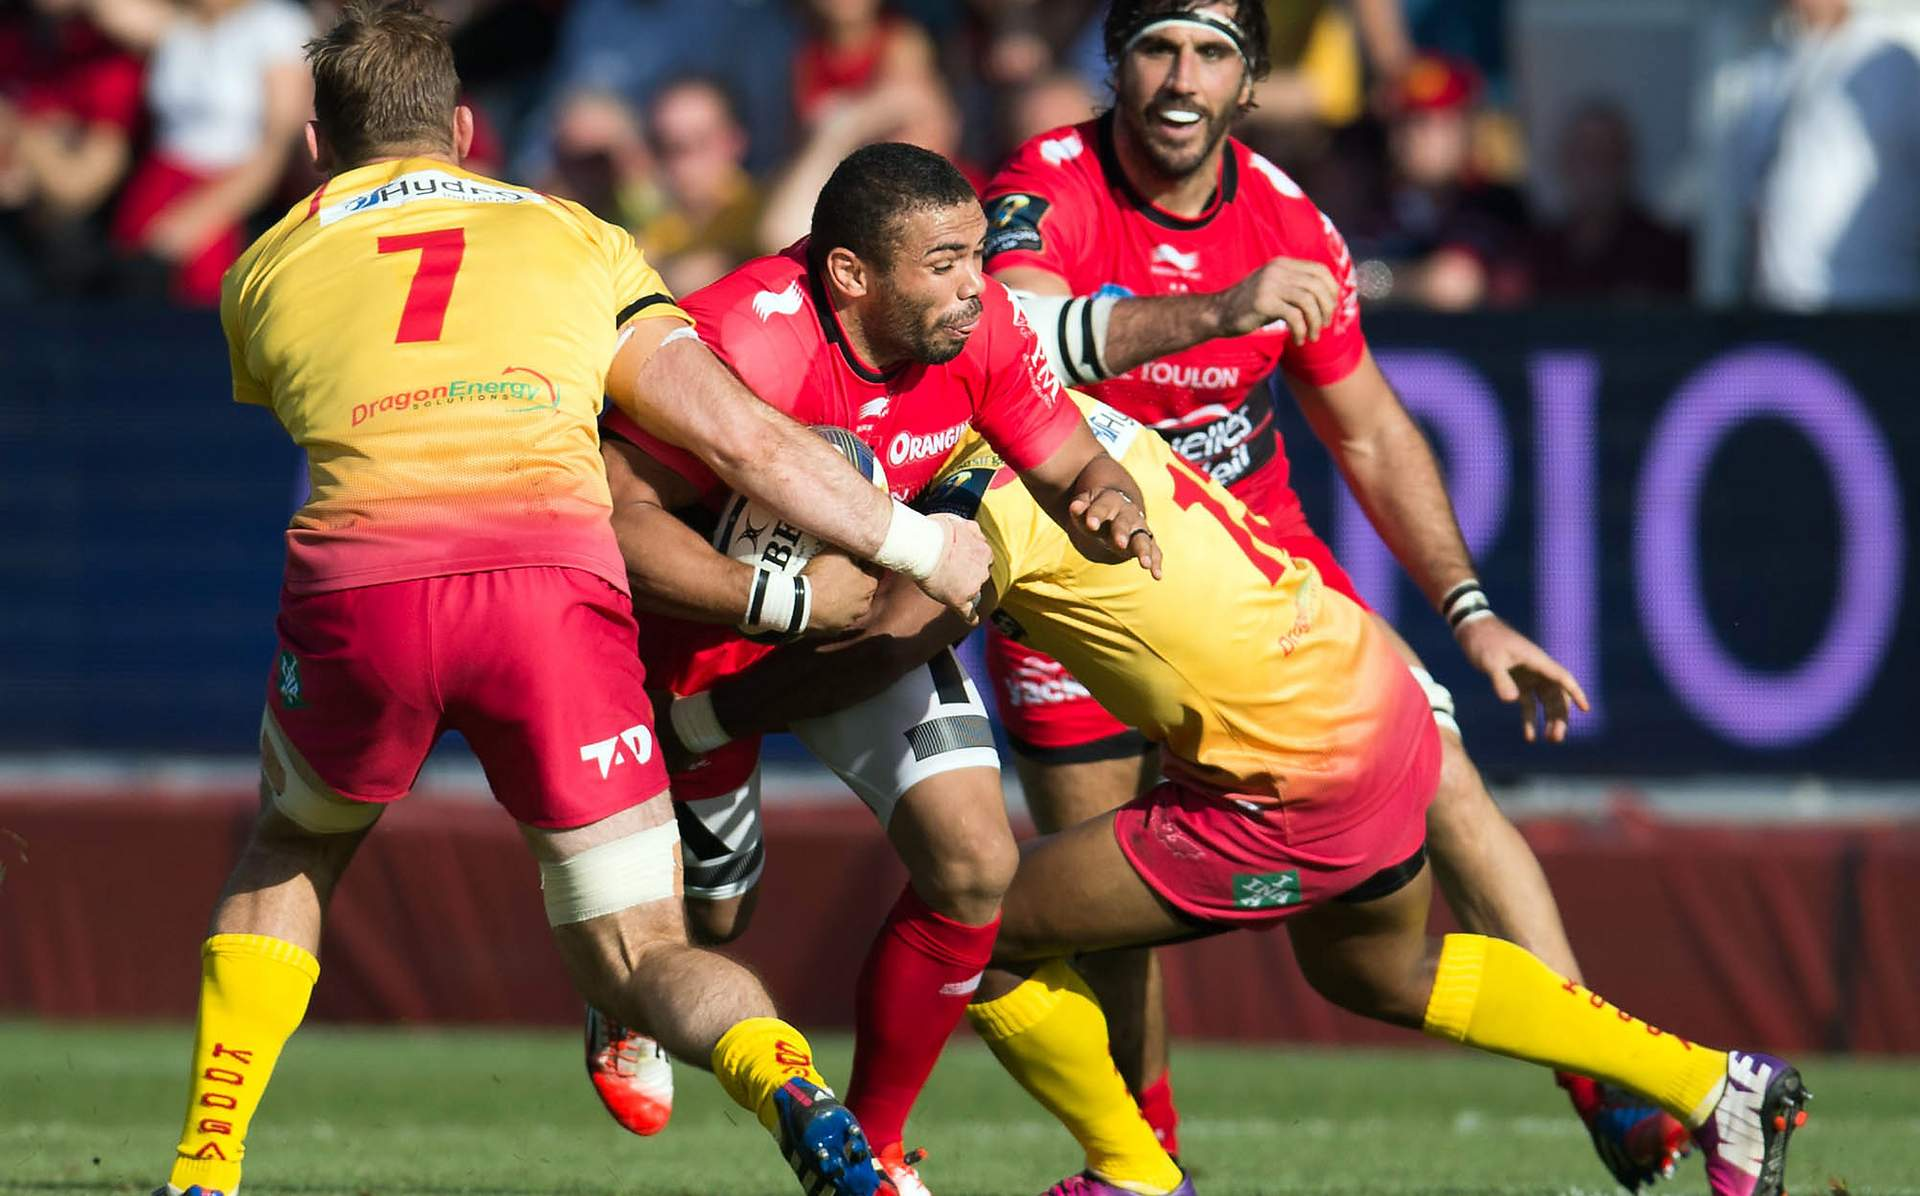 REPORT: Scarlets push Toulon all the way